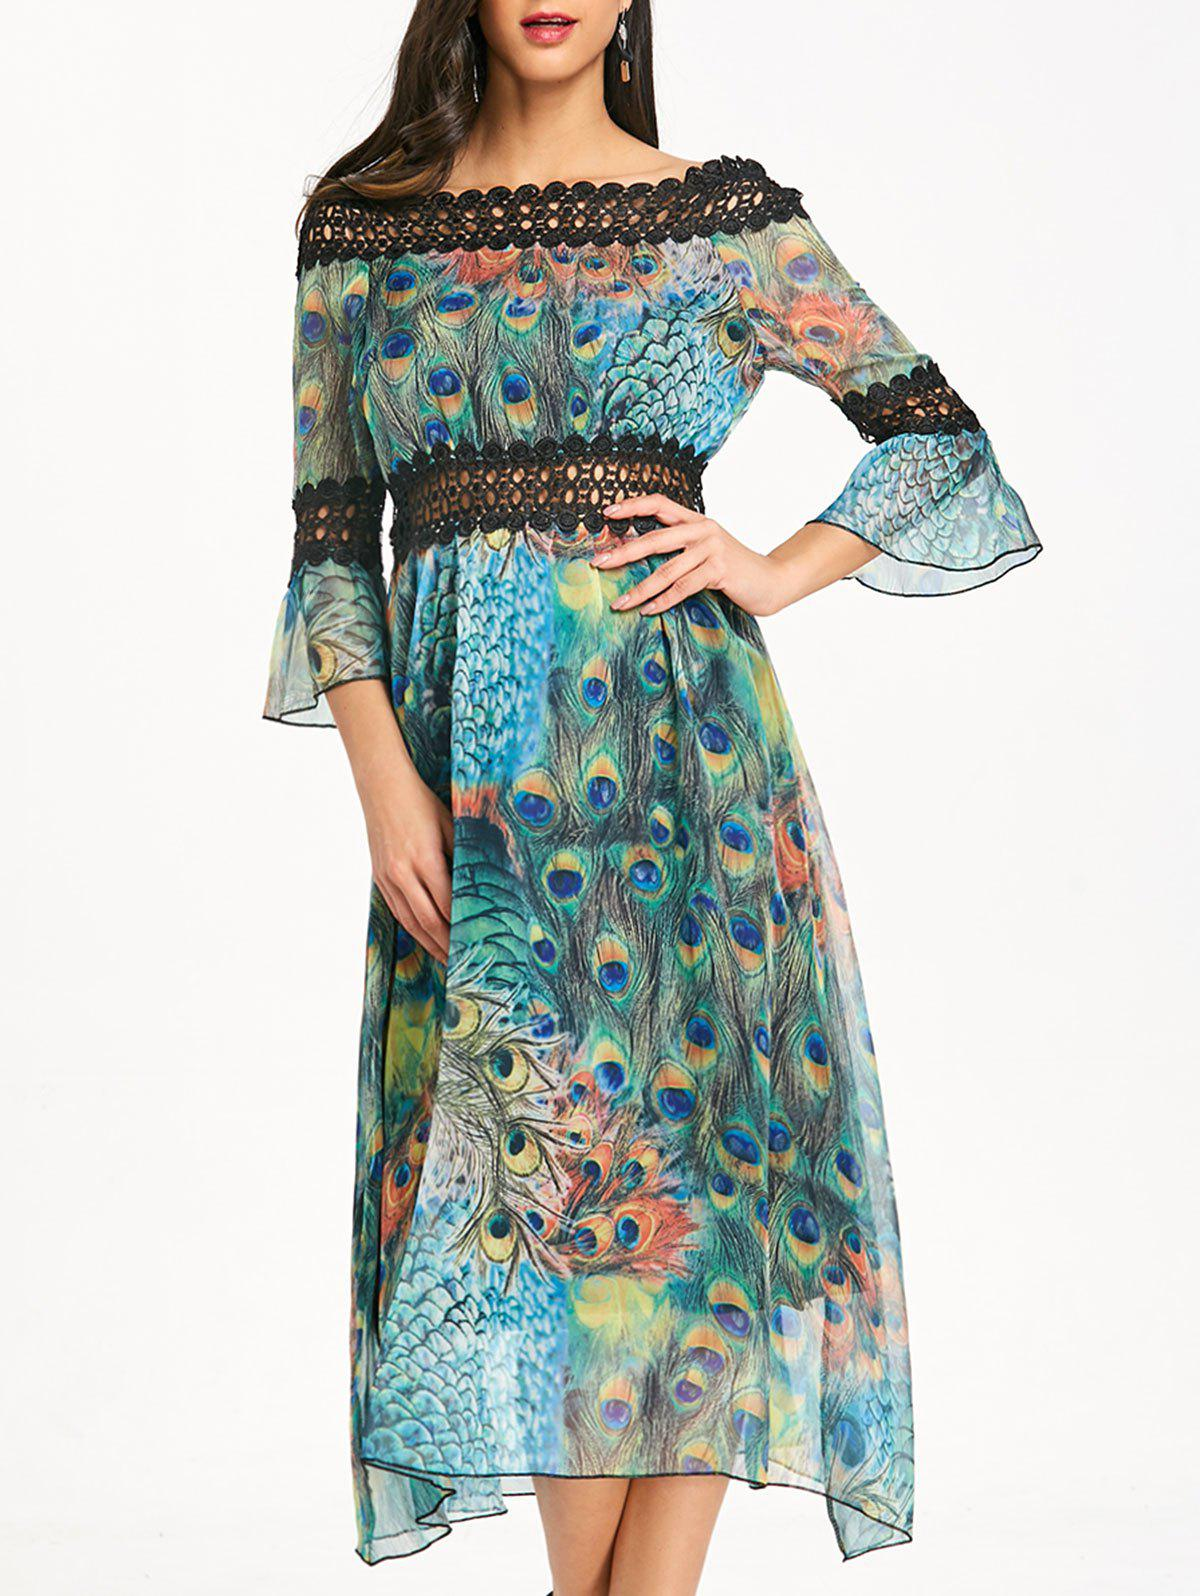 Peacock Feather Print Off Shoulder Chiffon Dress - LAKE BLUE L